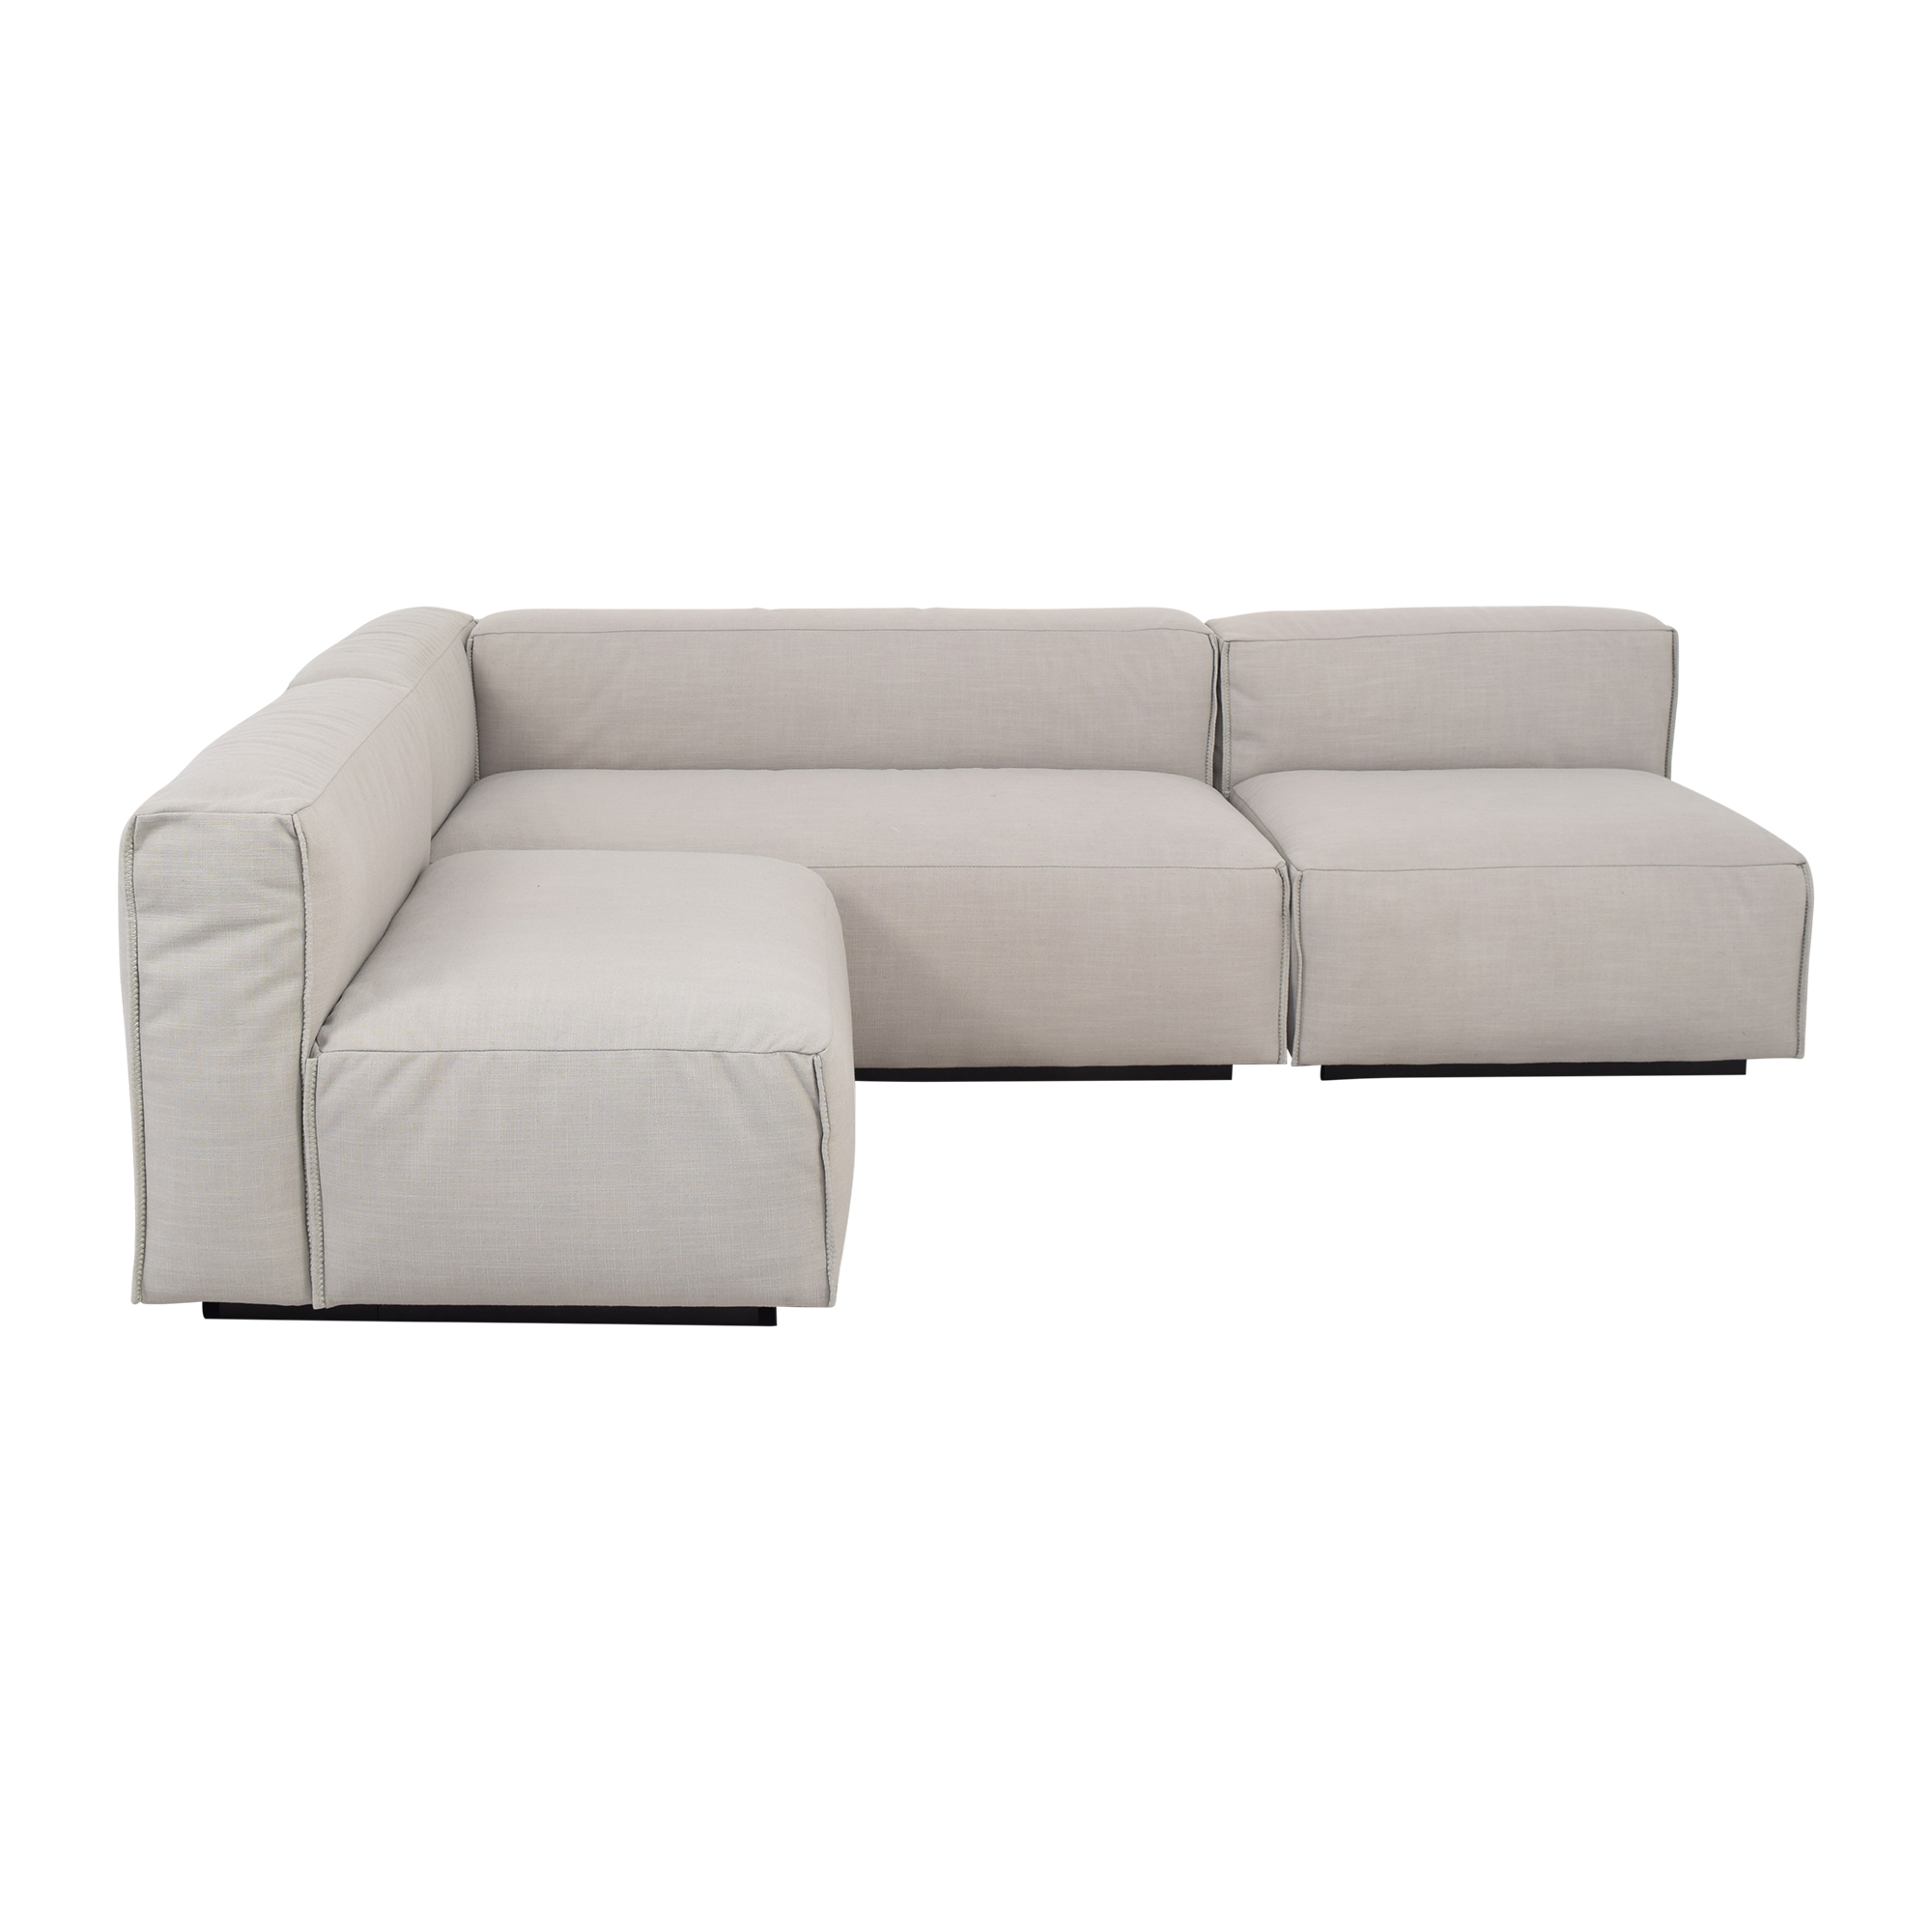 Blu Dot Blu Dot Cleon Medium Sectional Sofa price